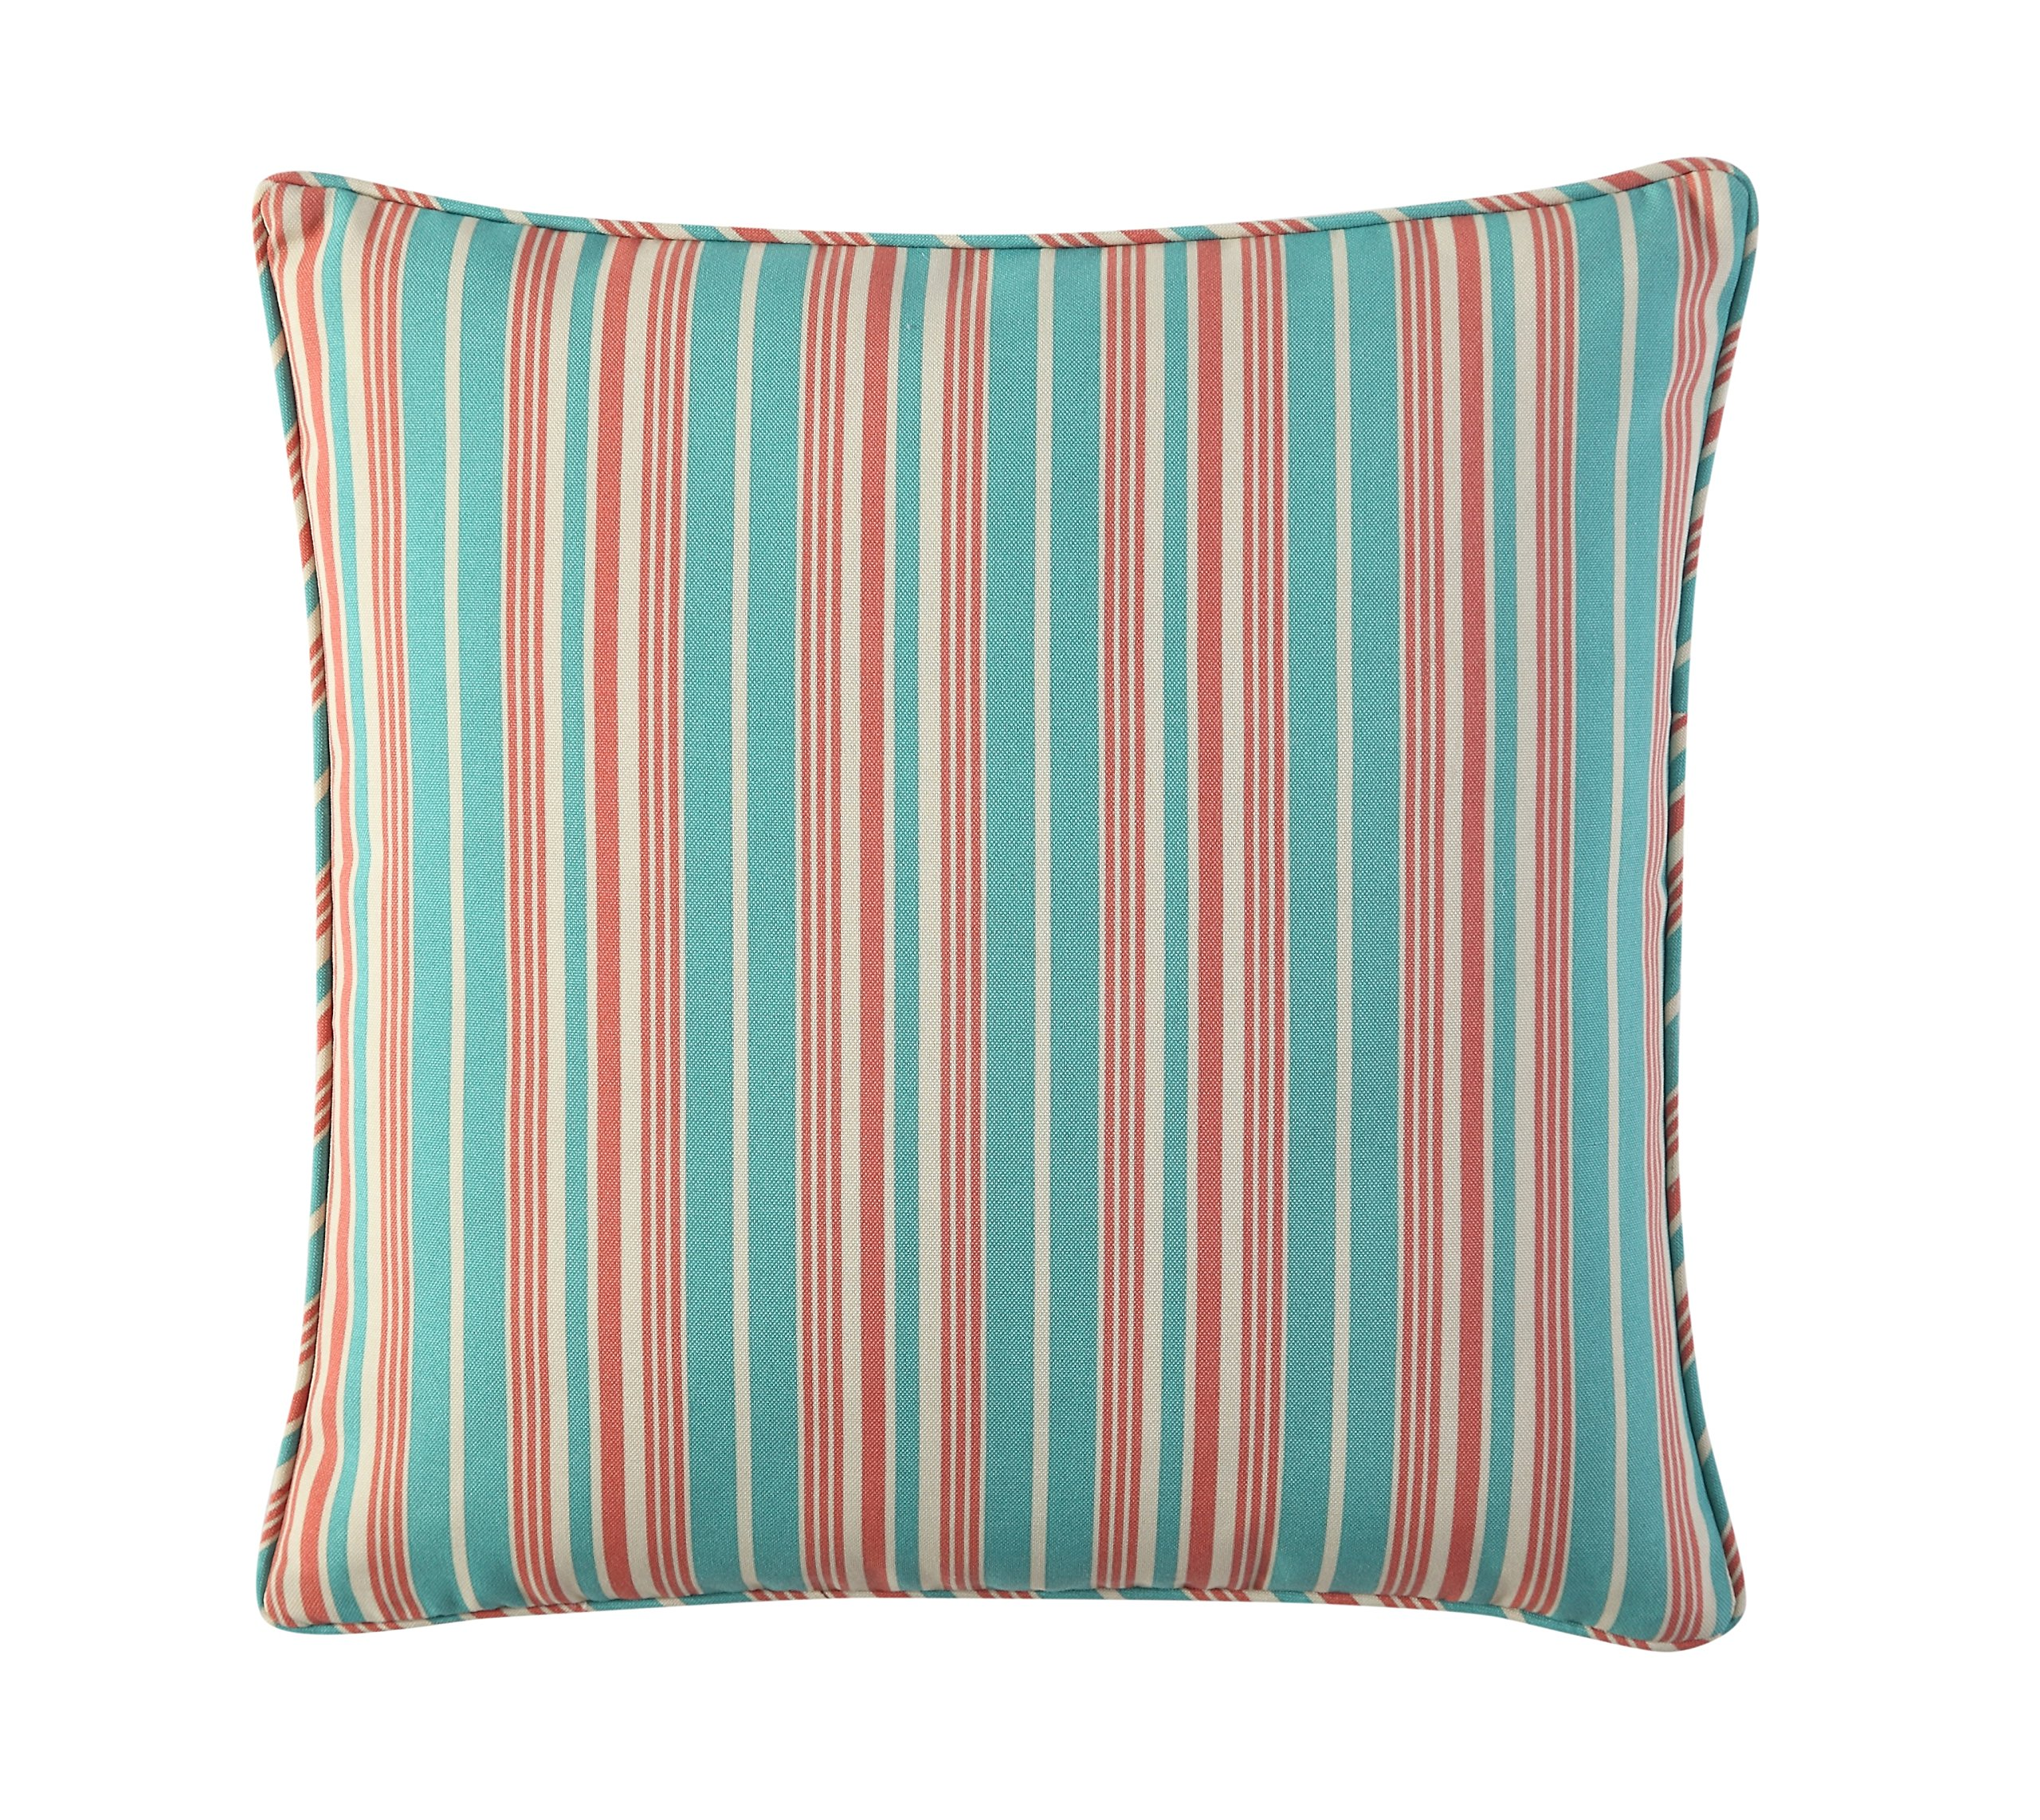 WAVERLY Indoor/Outdoor Decorative Throw Cushion – 17 x 17 Inches, FILLING INCLUDED, Available in Many Designs, Comfortable and Durable (Aran Capri)